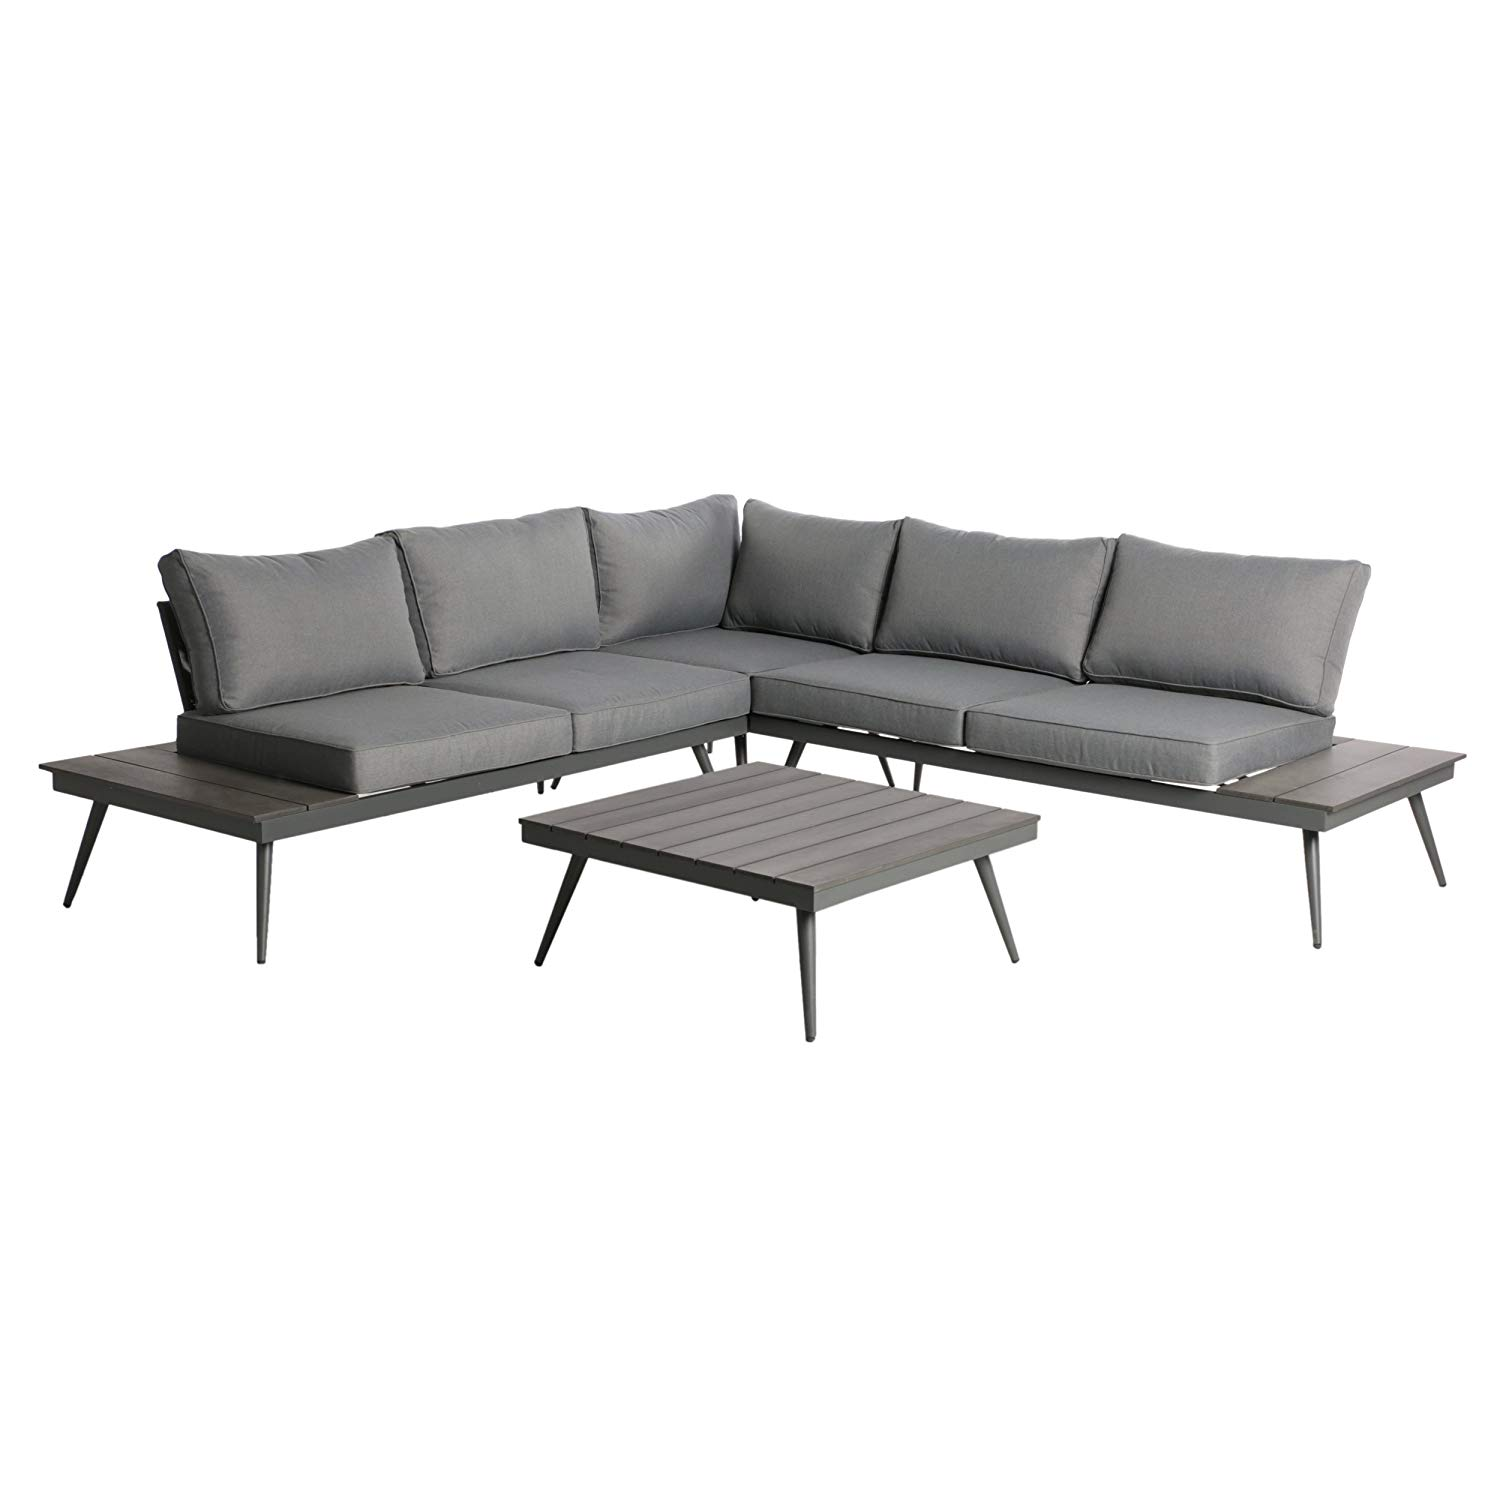 Get Quotations Great Deal Furniture Deborah Outdoor Wood And Aluminum V Shaped 5 Seater Sofa Set